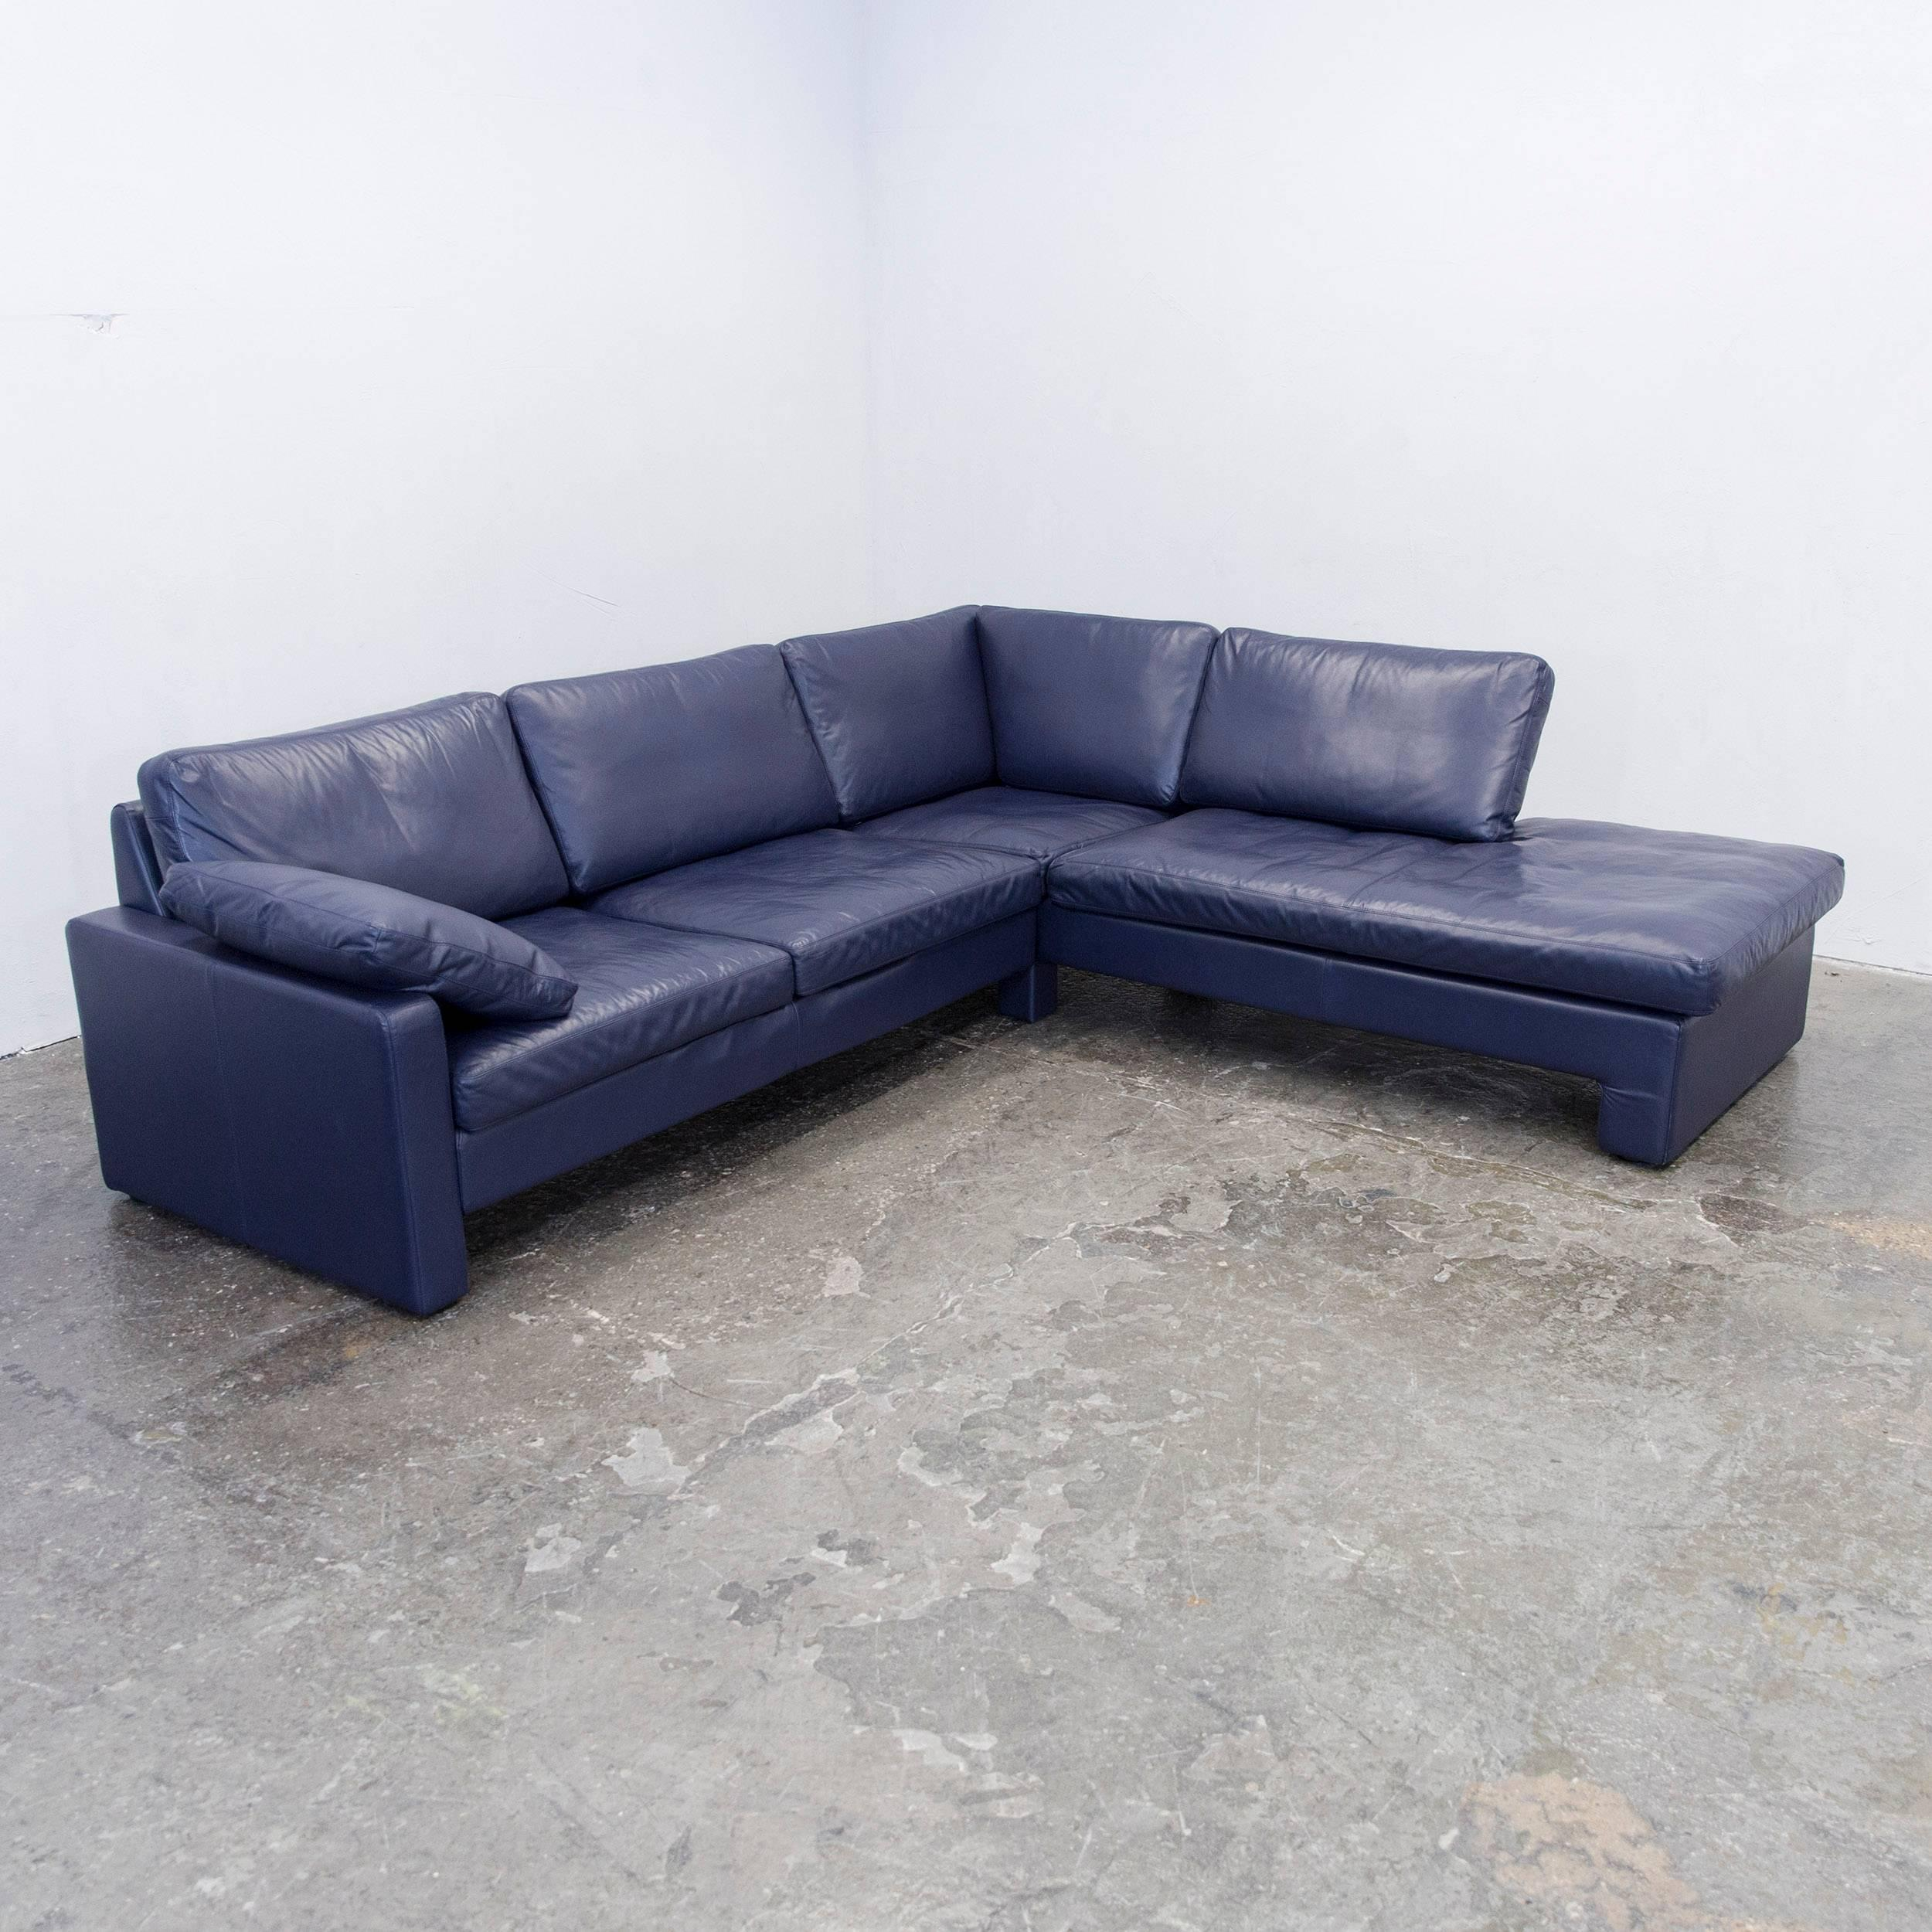 German COR Conseta Designer Leather Corner Couch Blue Modern For Sale